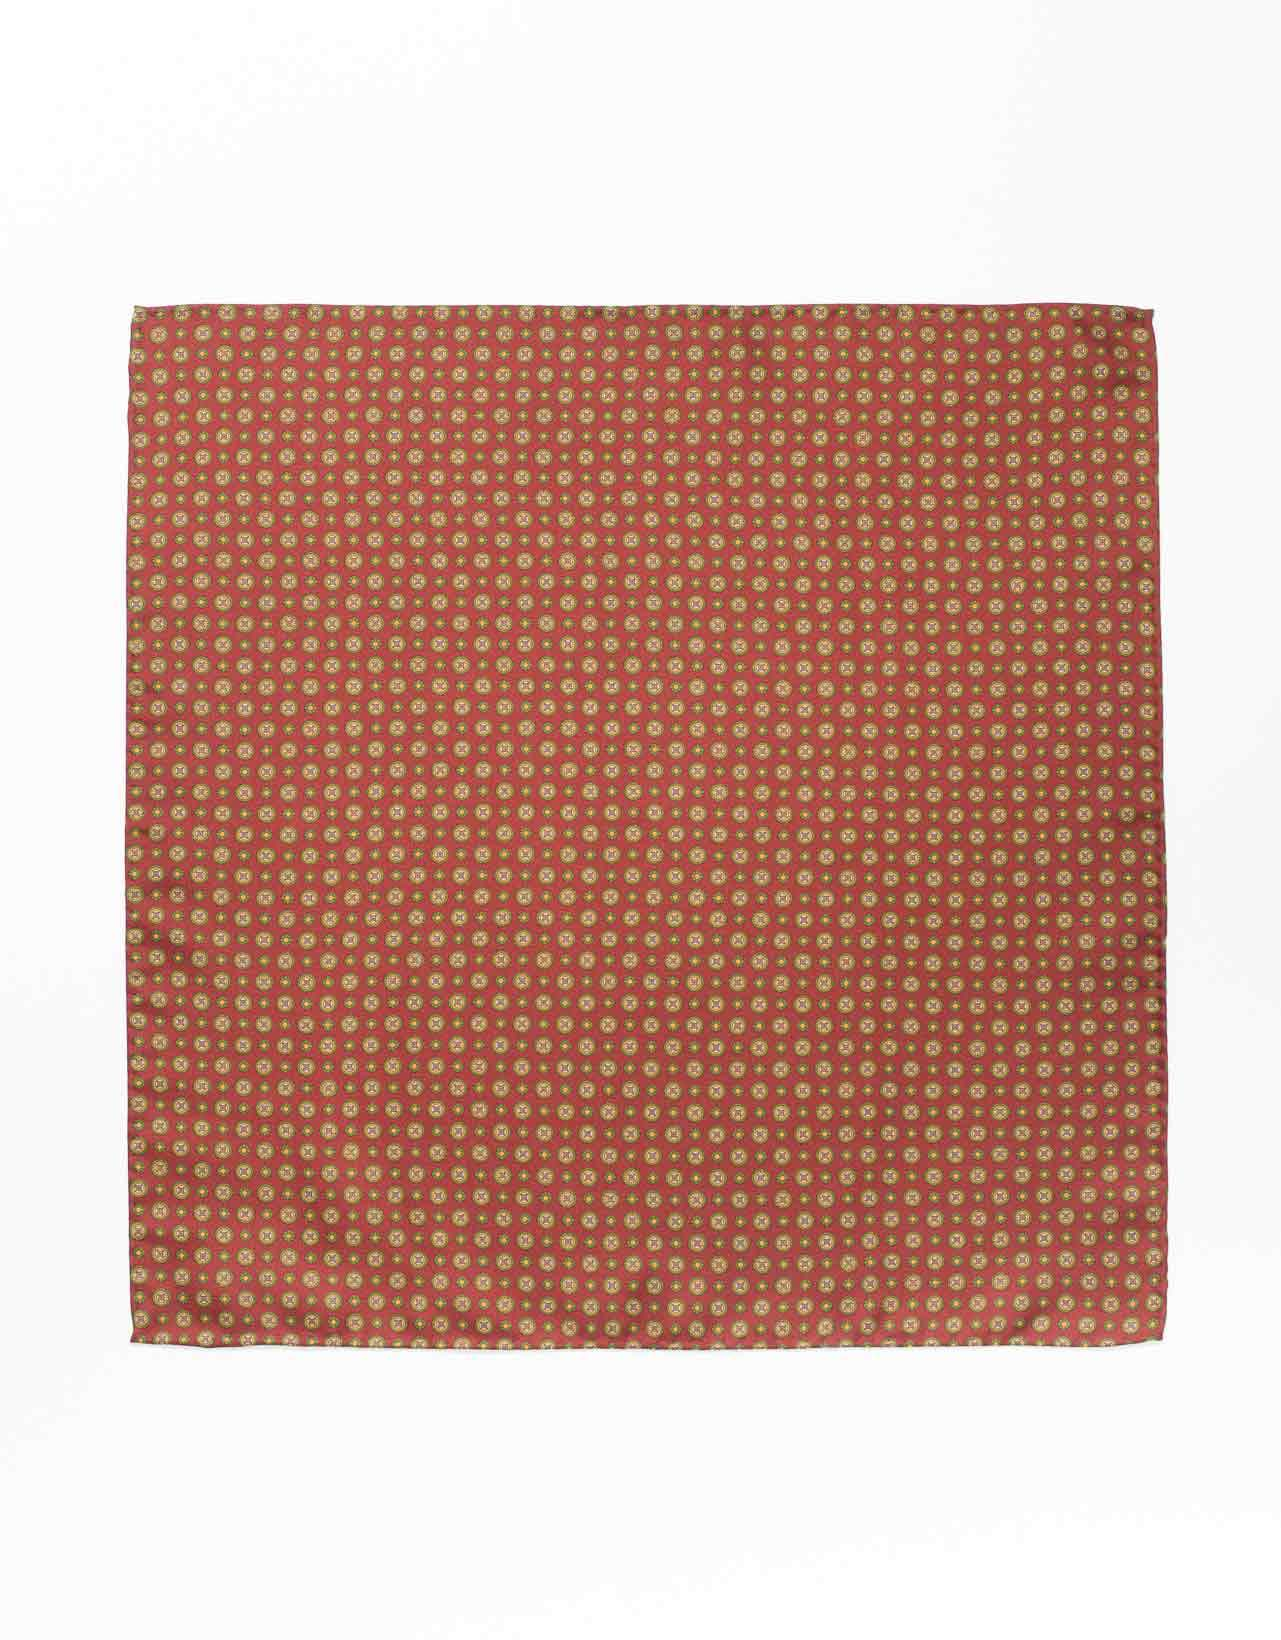 SILK MEDALLION AND FOULARD POCKET SQUARE- BURGUNDY